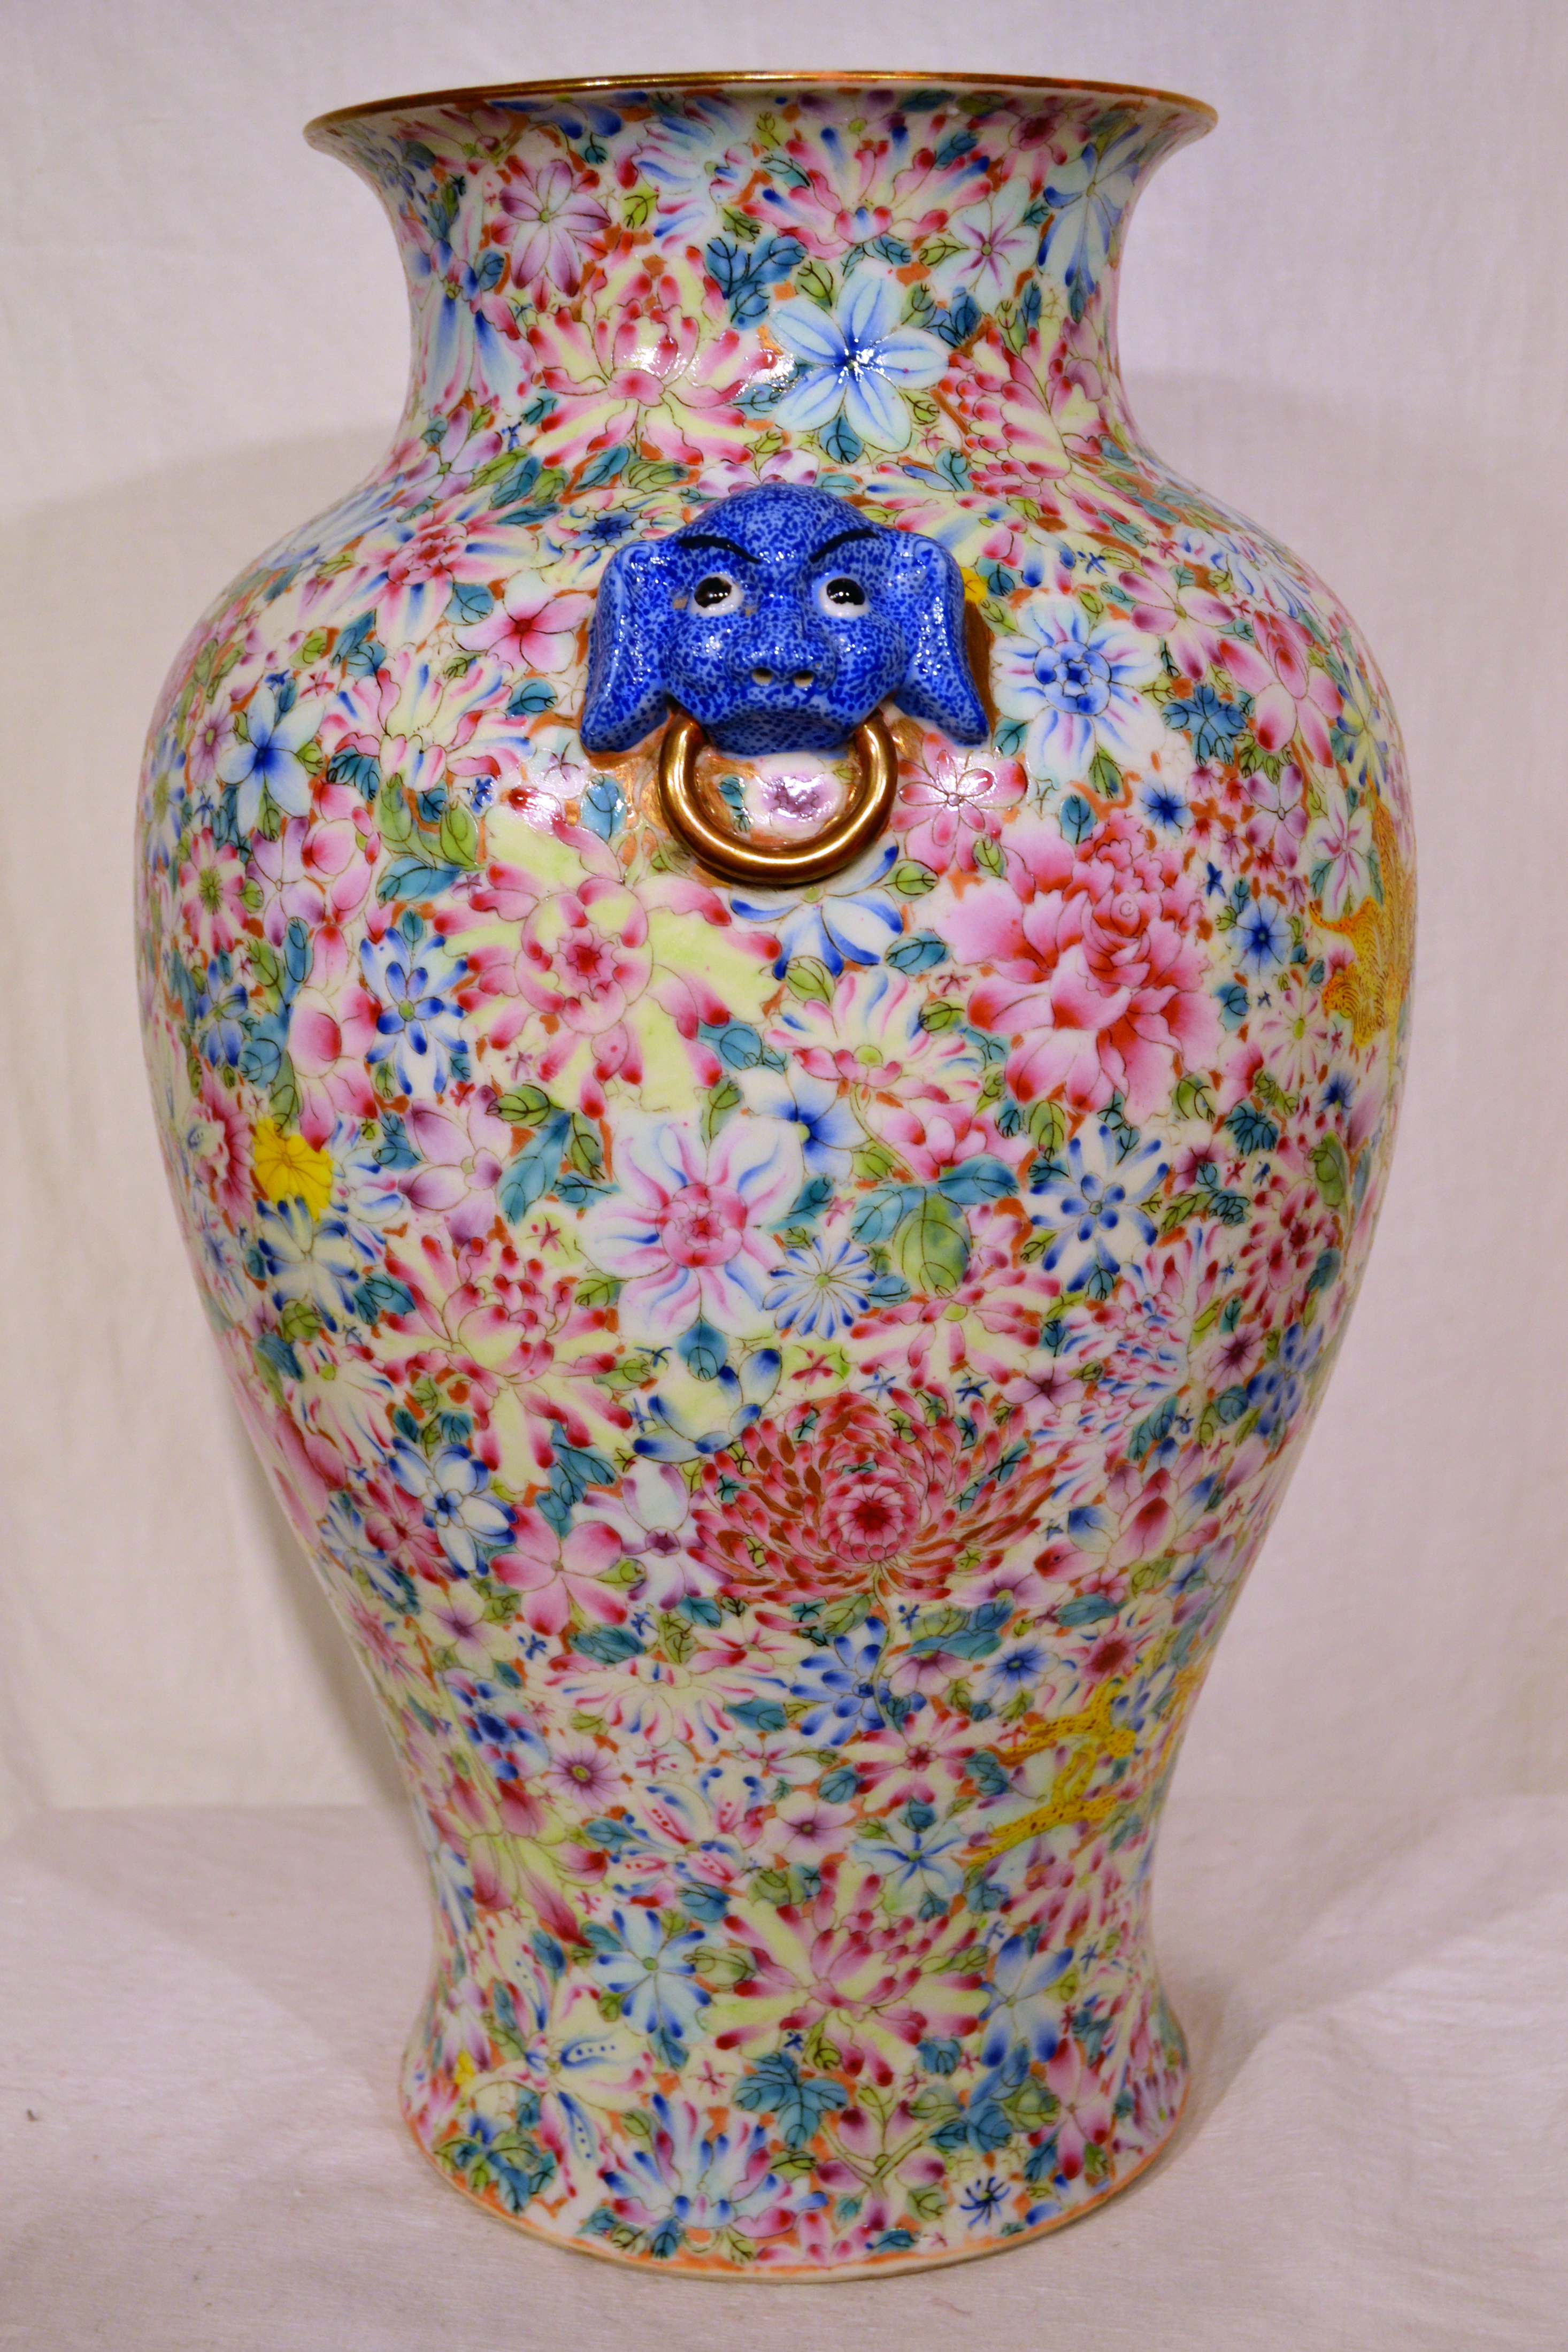 Fantastic vases recently purchased from high end estate x024 x025 x029 x030 x034 xdsc0066 reviewsmspy